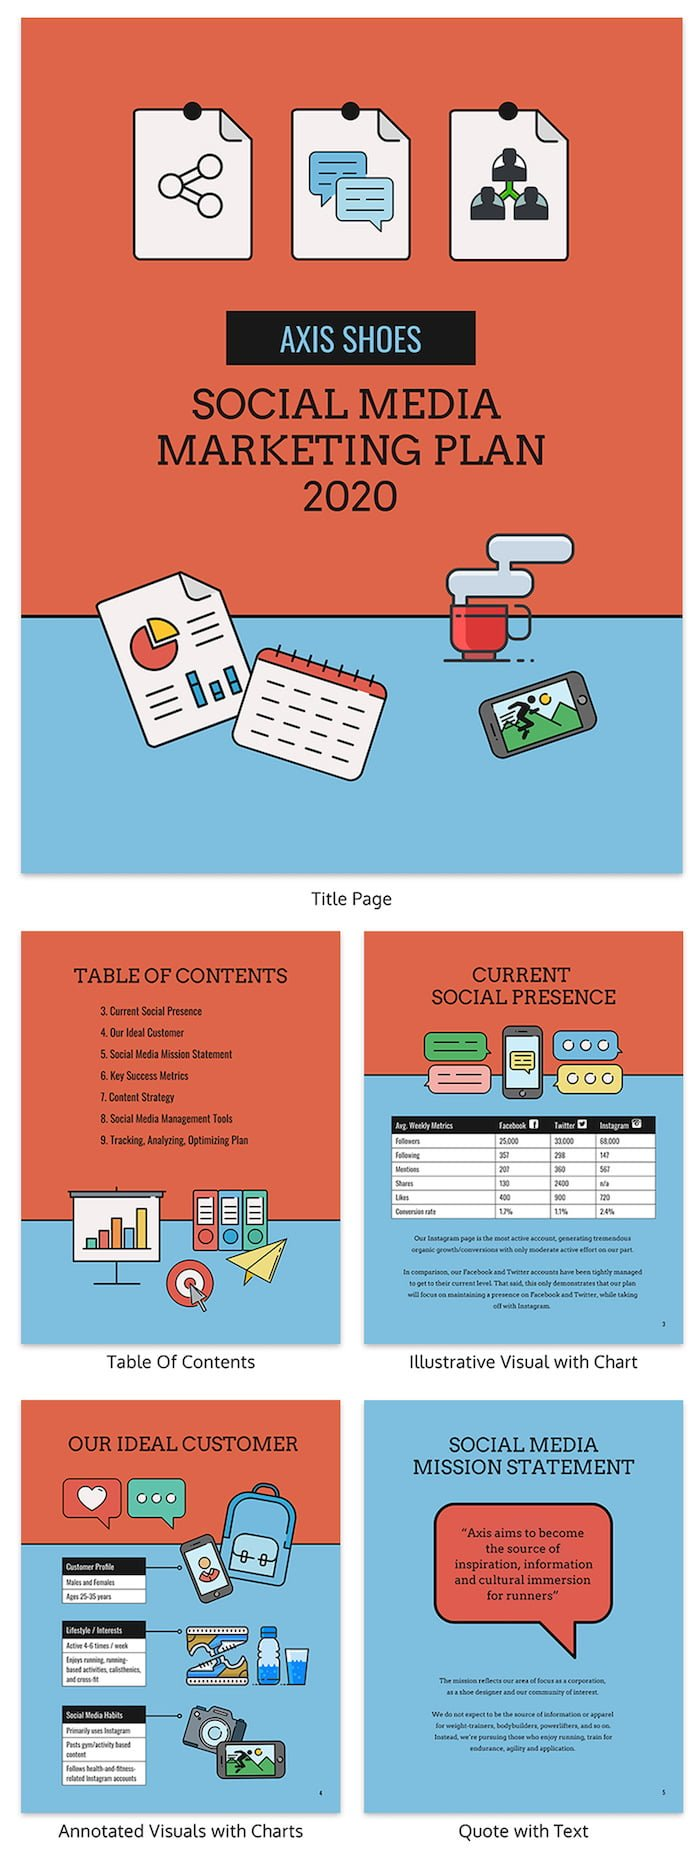 The 10 key elements that your business plan should have